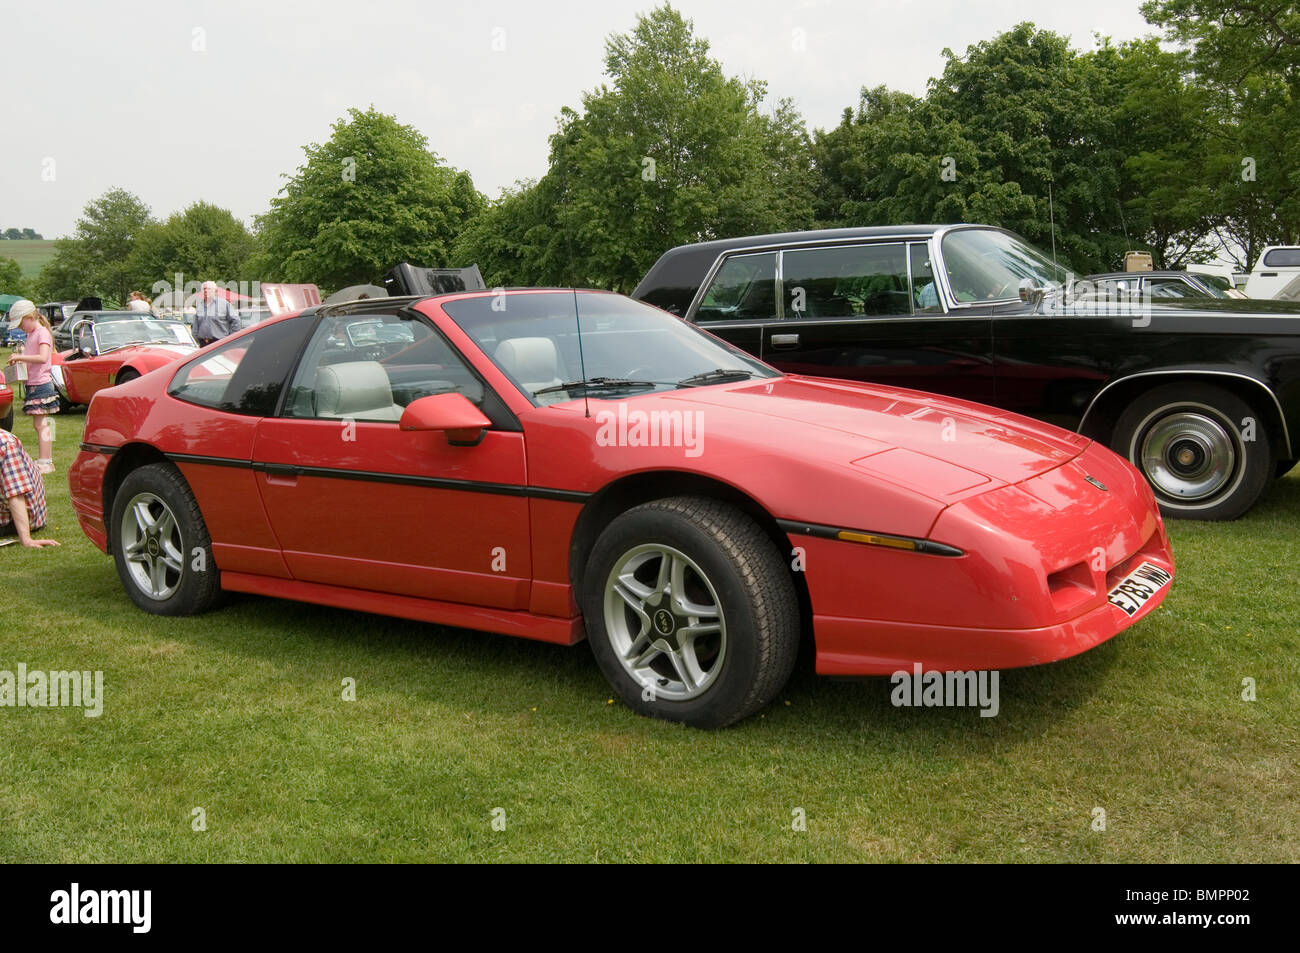 pontiac fiero sports car mid engined american - Stock Image